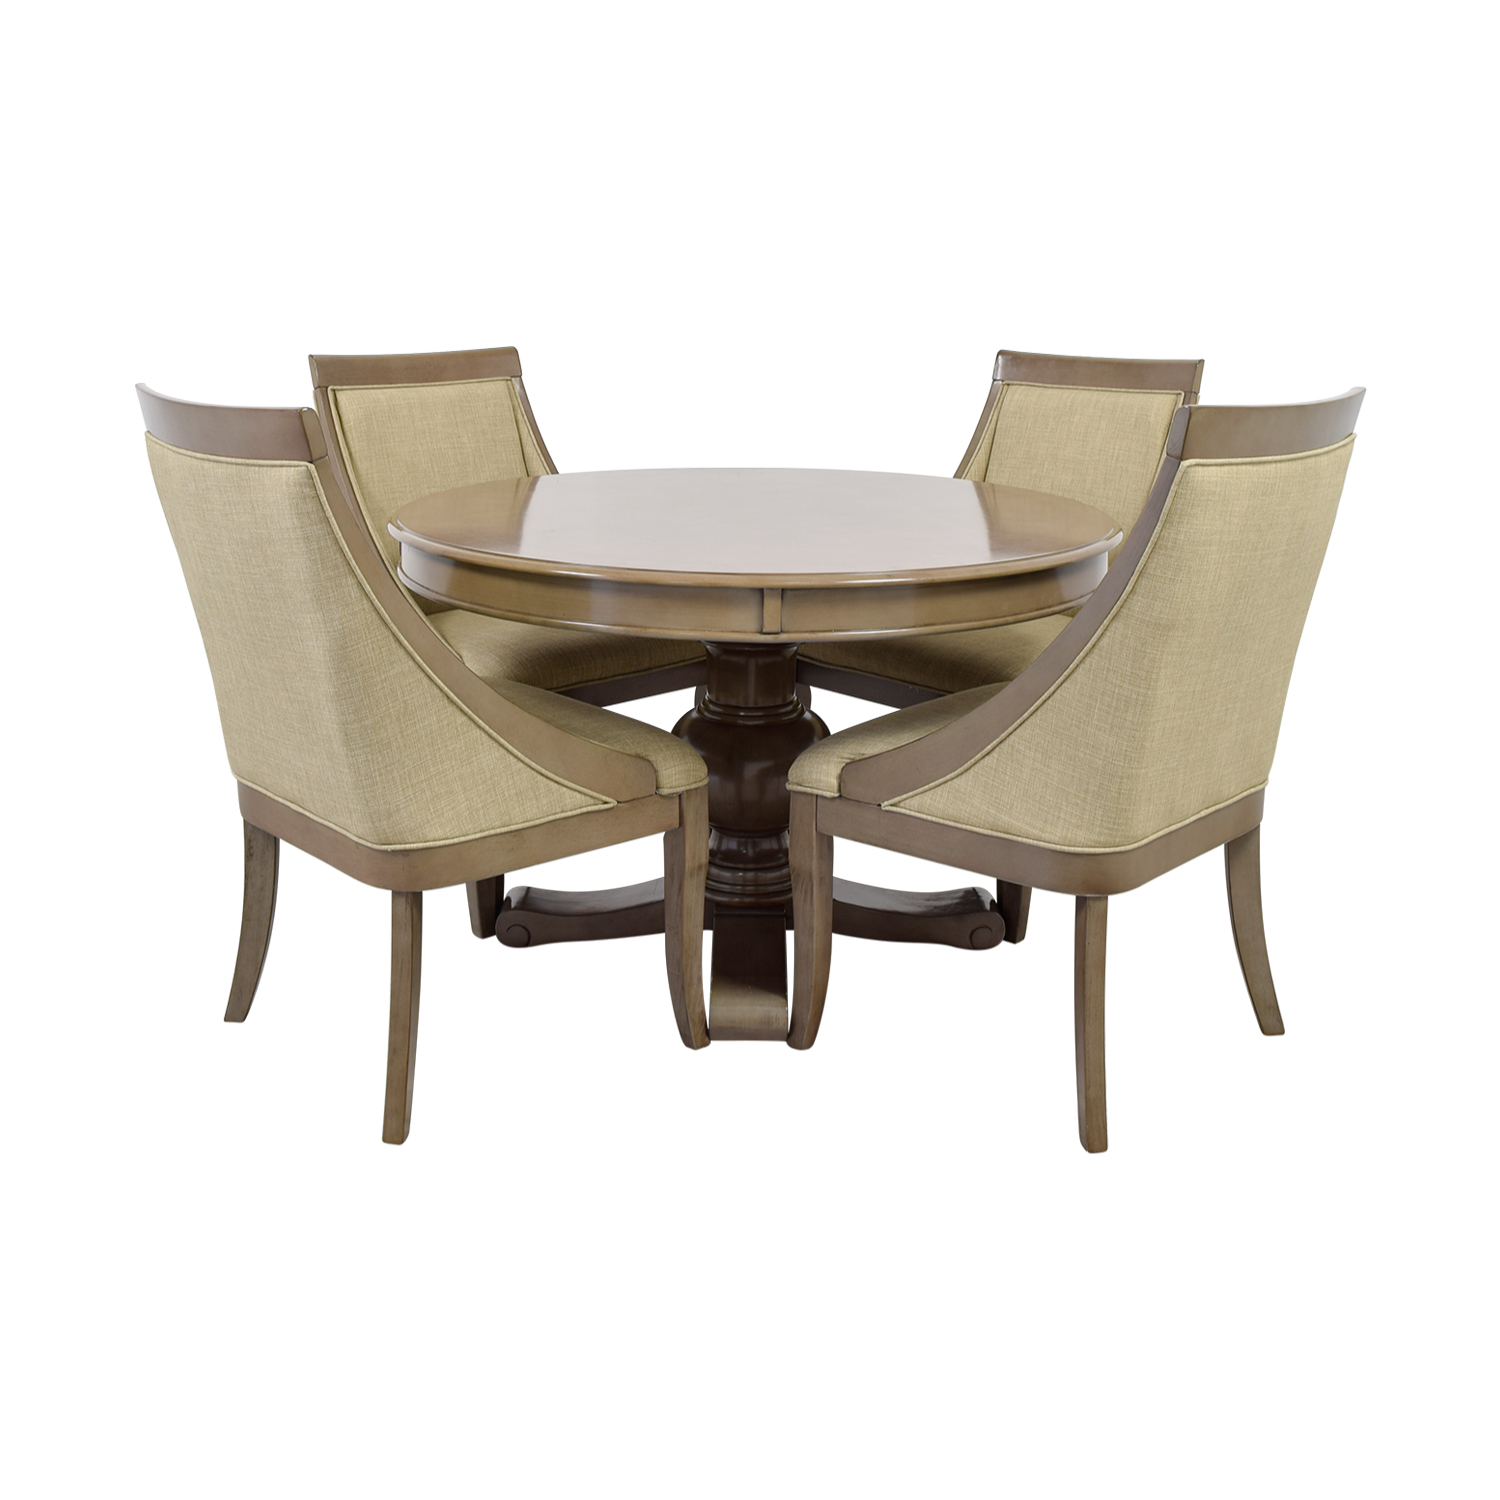 Bobu0027s Furniture Bobu0027s Furniture Gatsby Round Dining Set With Swoop Chairs Dining  Sets ...